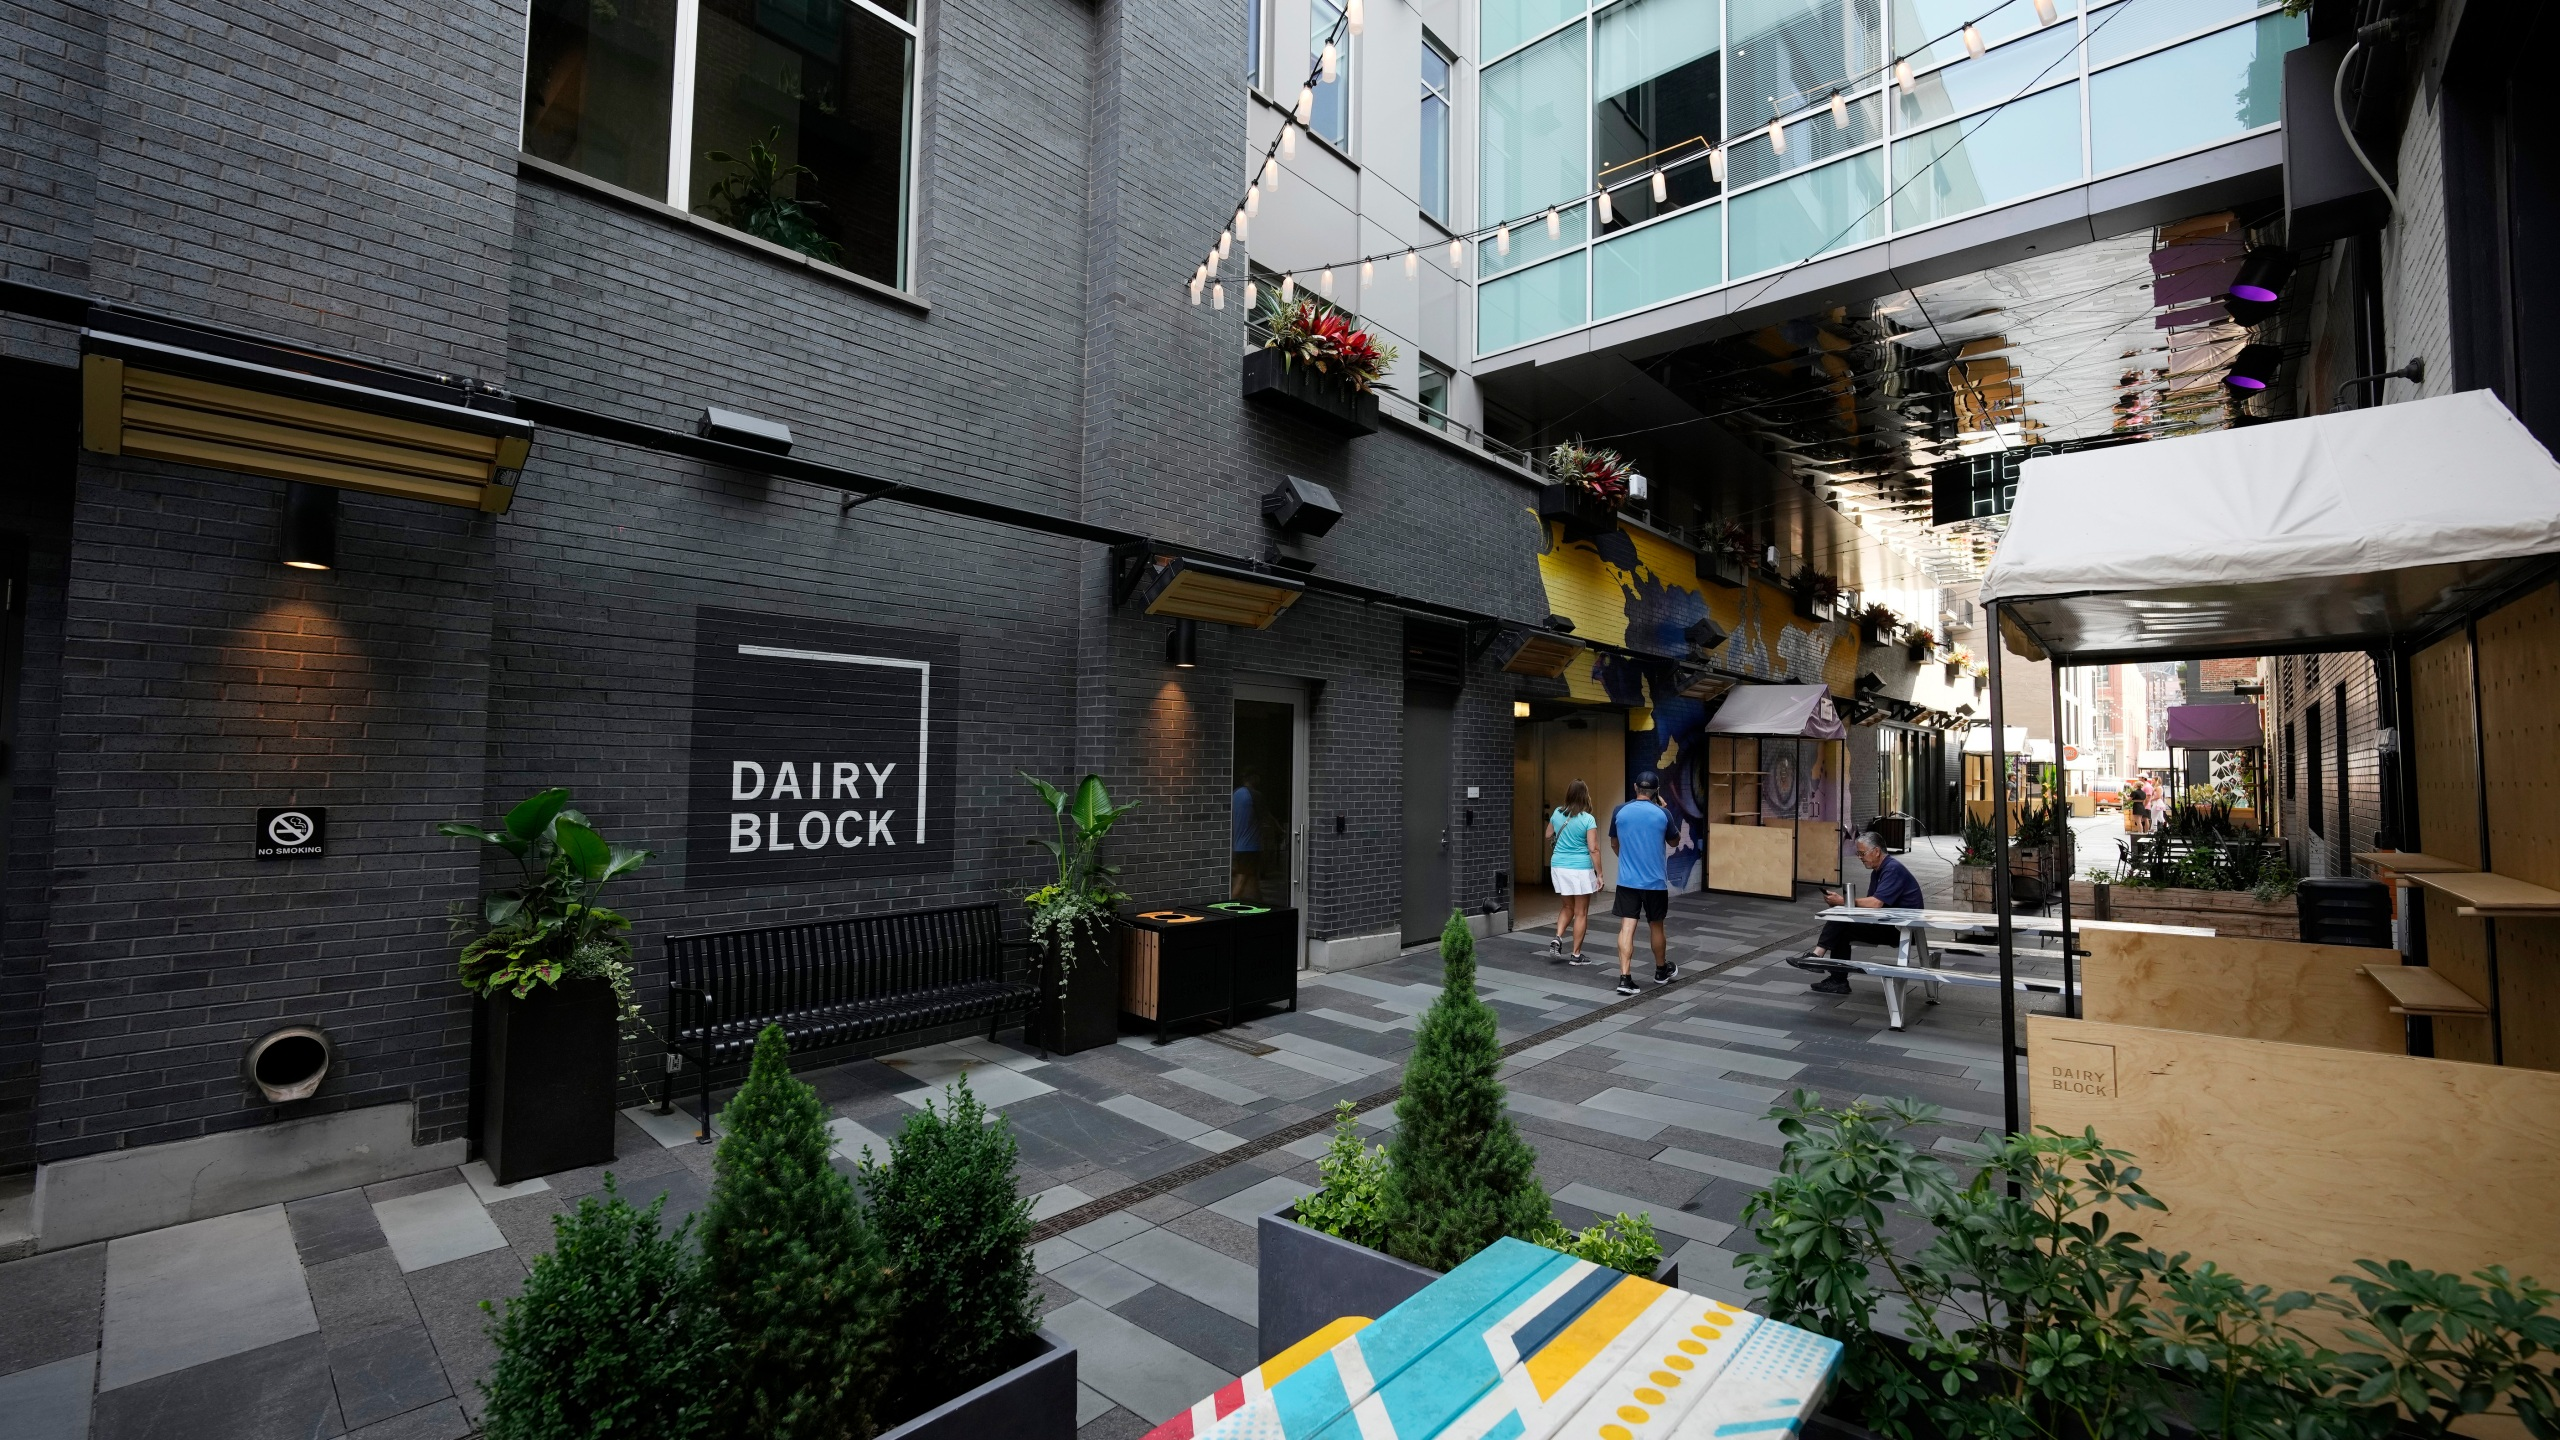 Pedestrians move through the alleyway in the Dairy Block and past the outside of the Maven Hotel Sunday, July 11, 2021, in lower downtown Denver. (AP Photo/David Zalubowski)